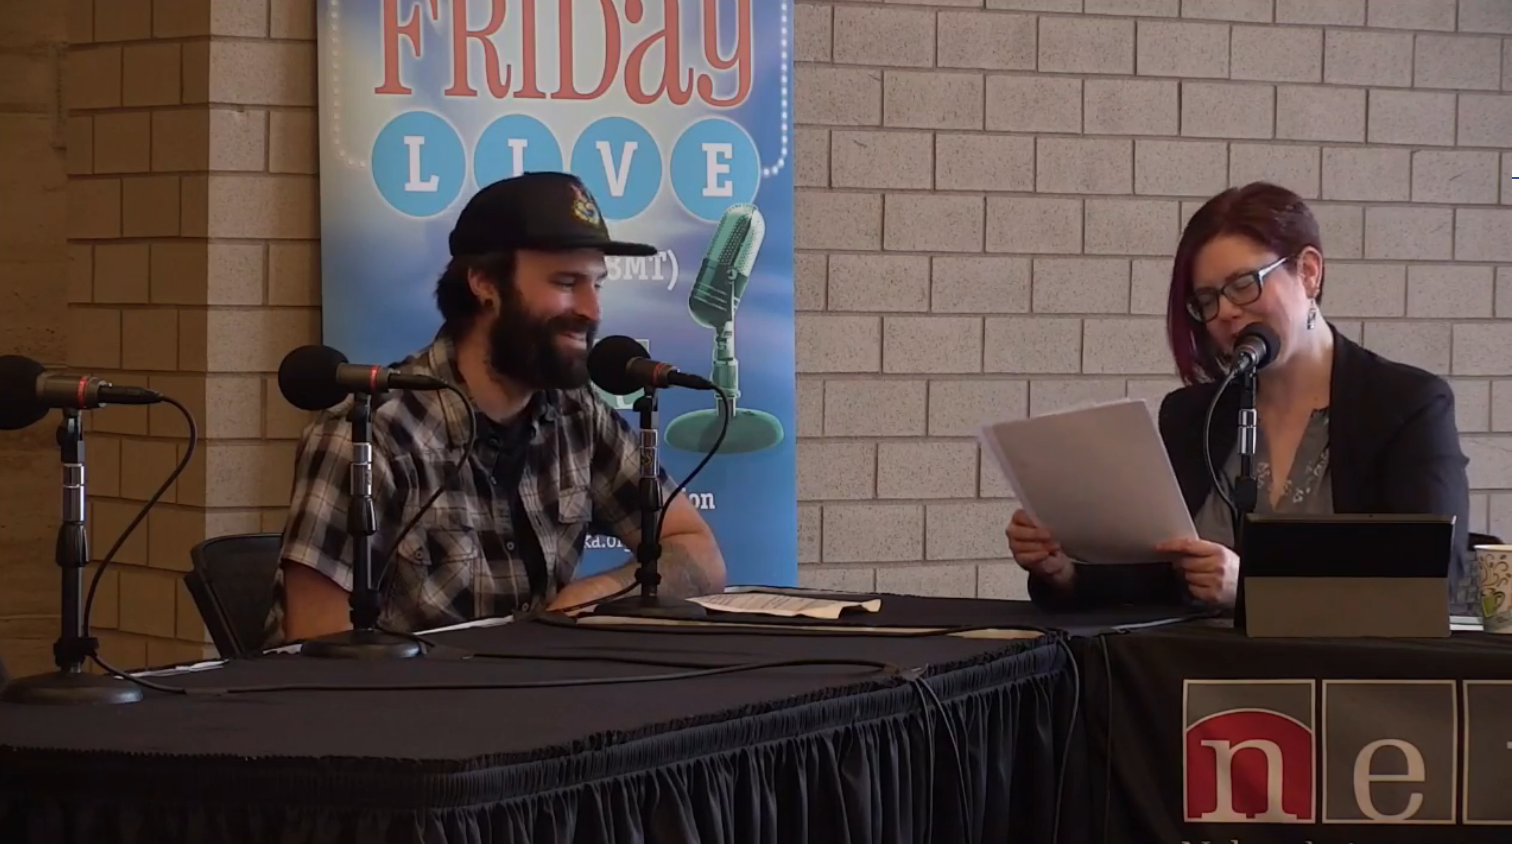 NET LIVE Friday Jan 25th 2019 - Dustin performs a song and is interviewed by Genevieve in promotion of upcoming 2019 shows in NE region.